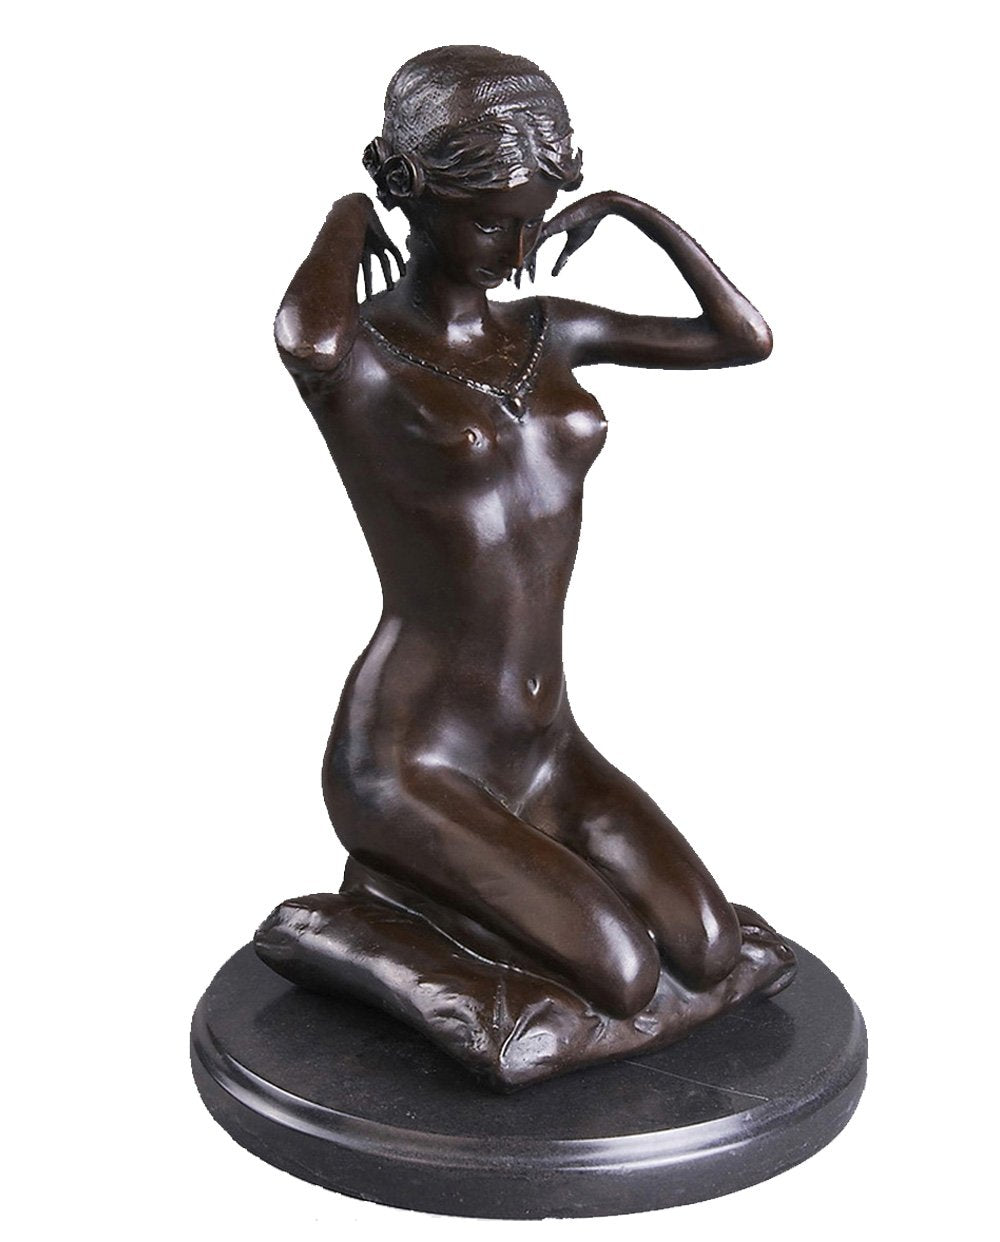 TPY-020 bronze sculpture